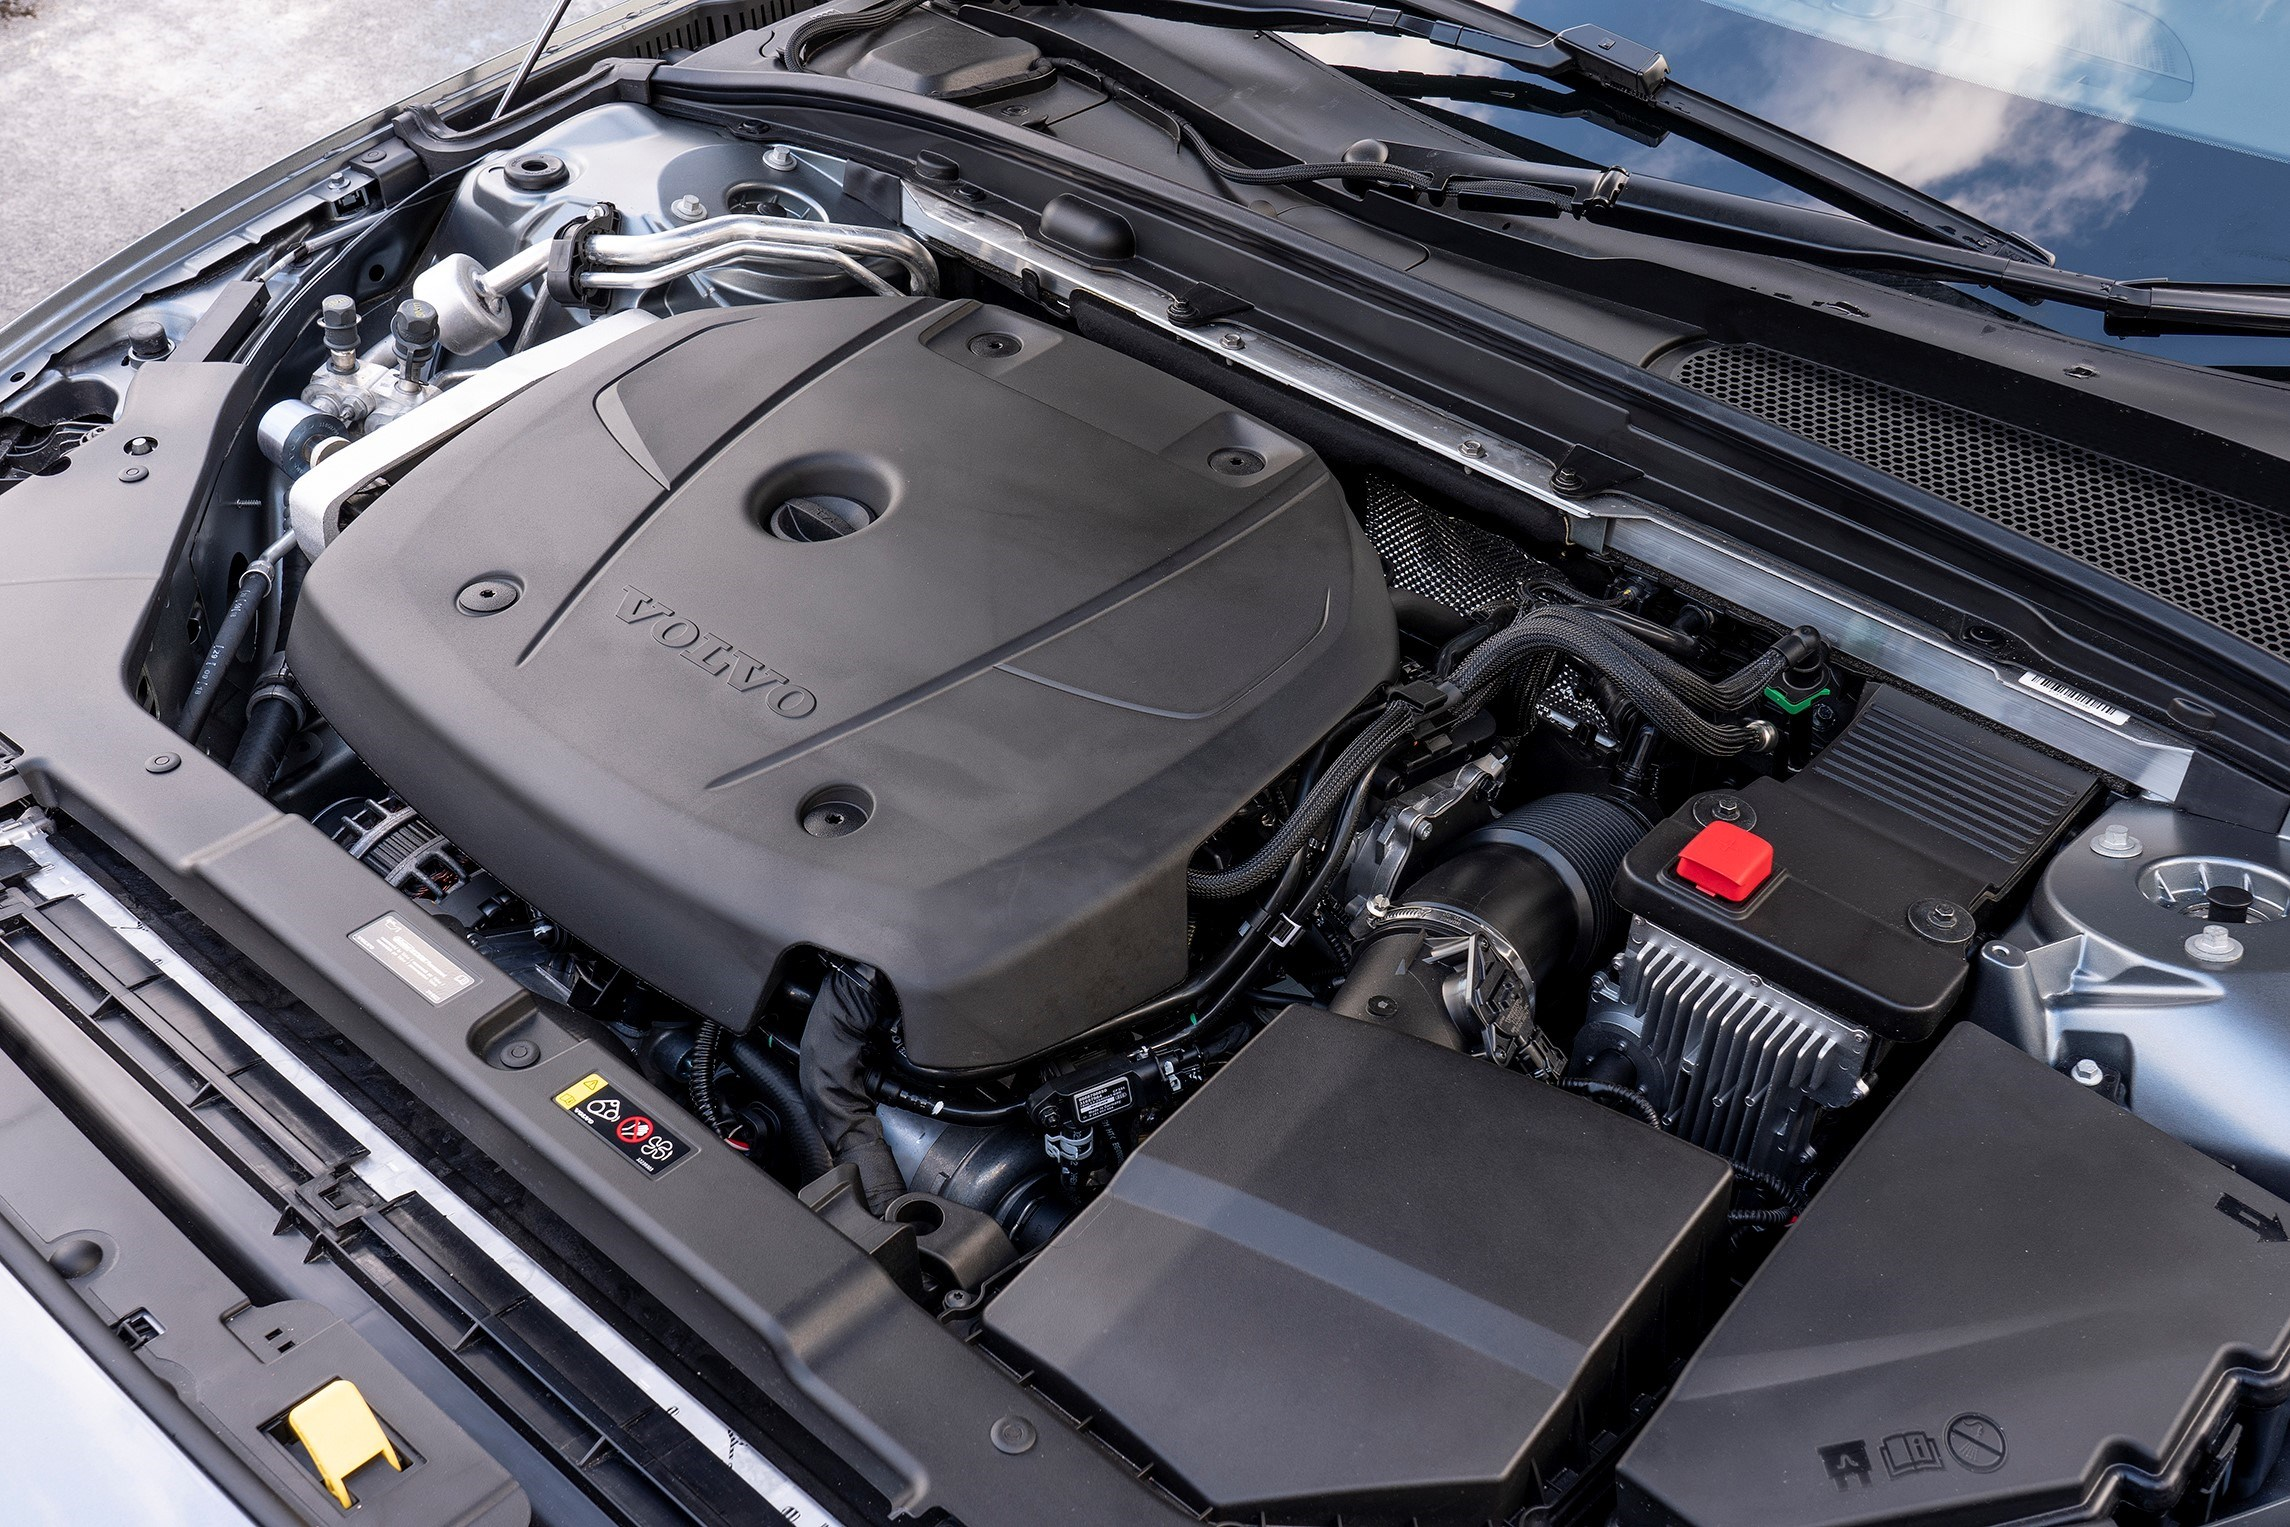 Under the bonnet of a Volvo S60 T5